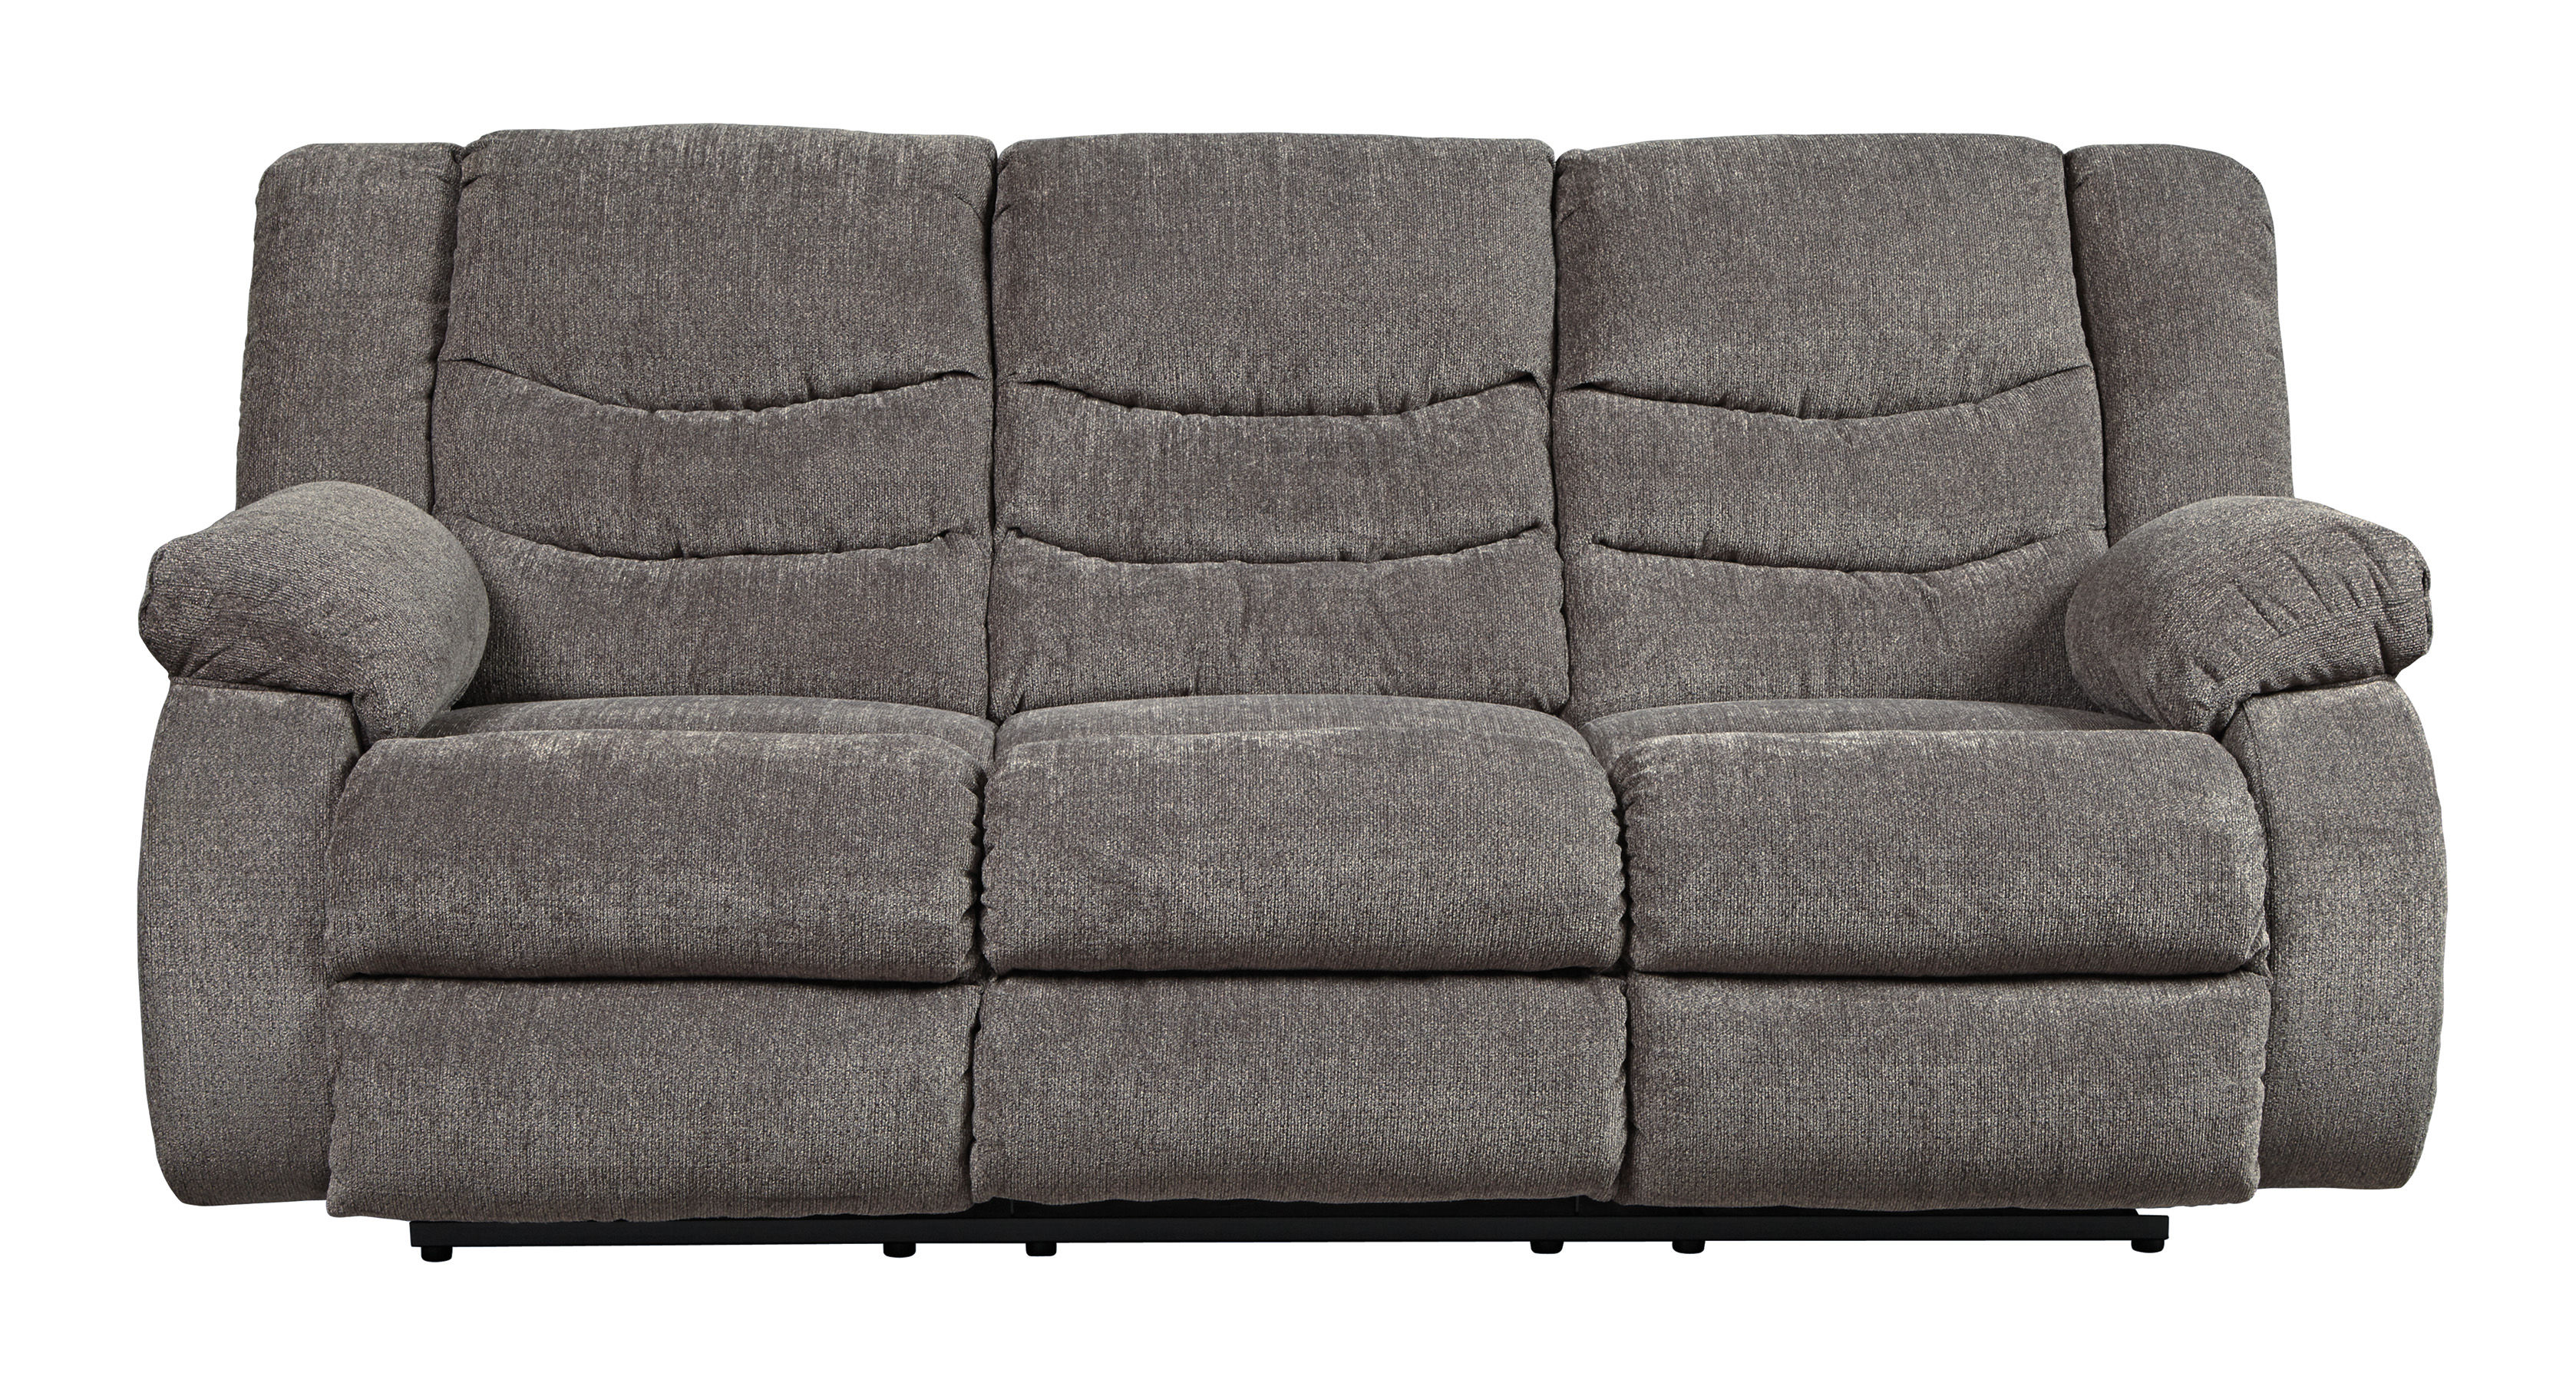 Ashley Furniture Tulen Gray Reclining Sofa The Classy Home